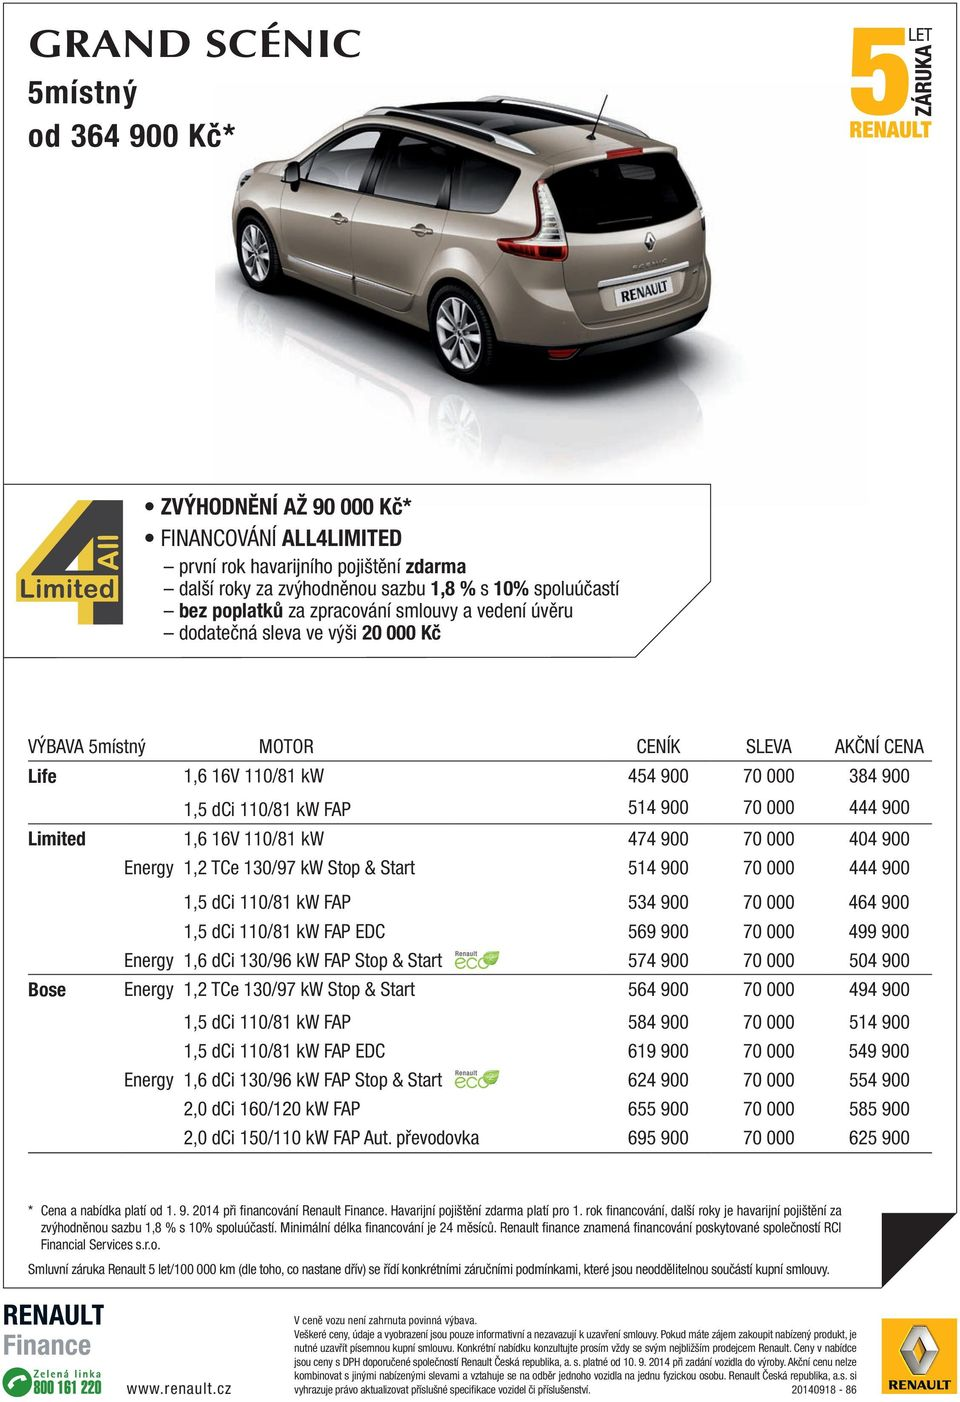 900 Limited 1,6 16V 110/81 kw 474 900 70 000 404 900 Energy 1,2 TCe 130/97 kw Stop & Start 514 900 70 000 444 900 1,5 dci 110/81 kw FAP 534 900 70 000 464 900 1,5 dci 110/81 kw FAP EDC 569 900 70 000